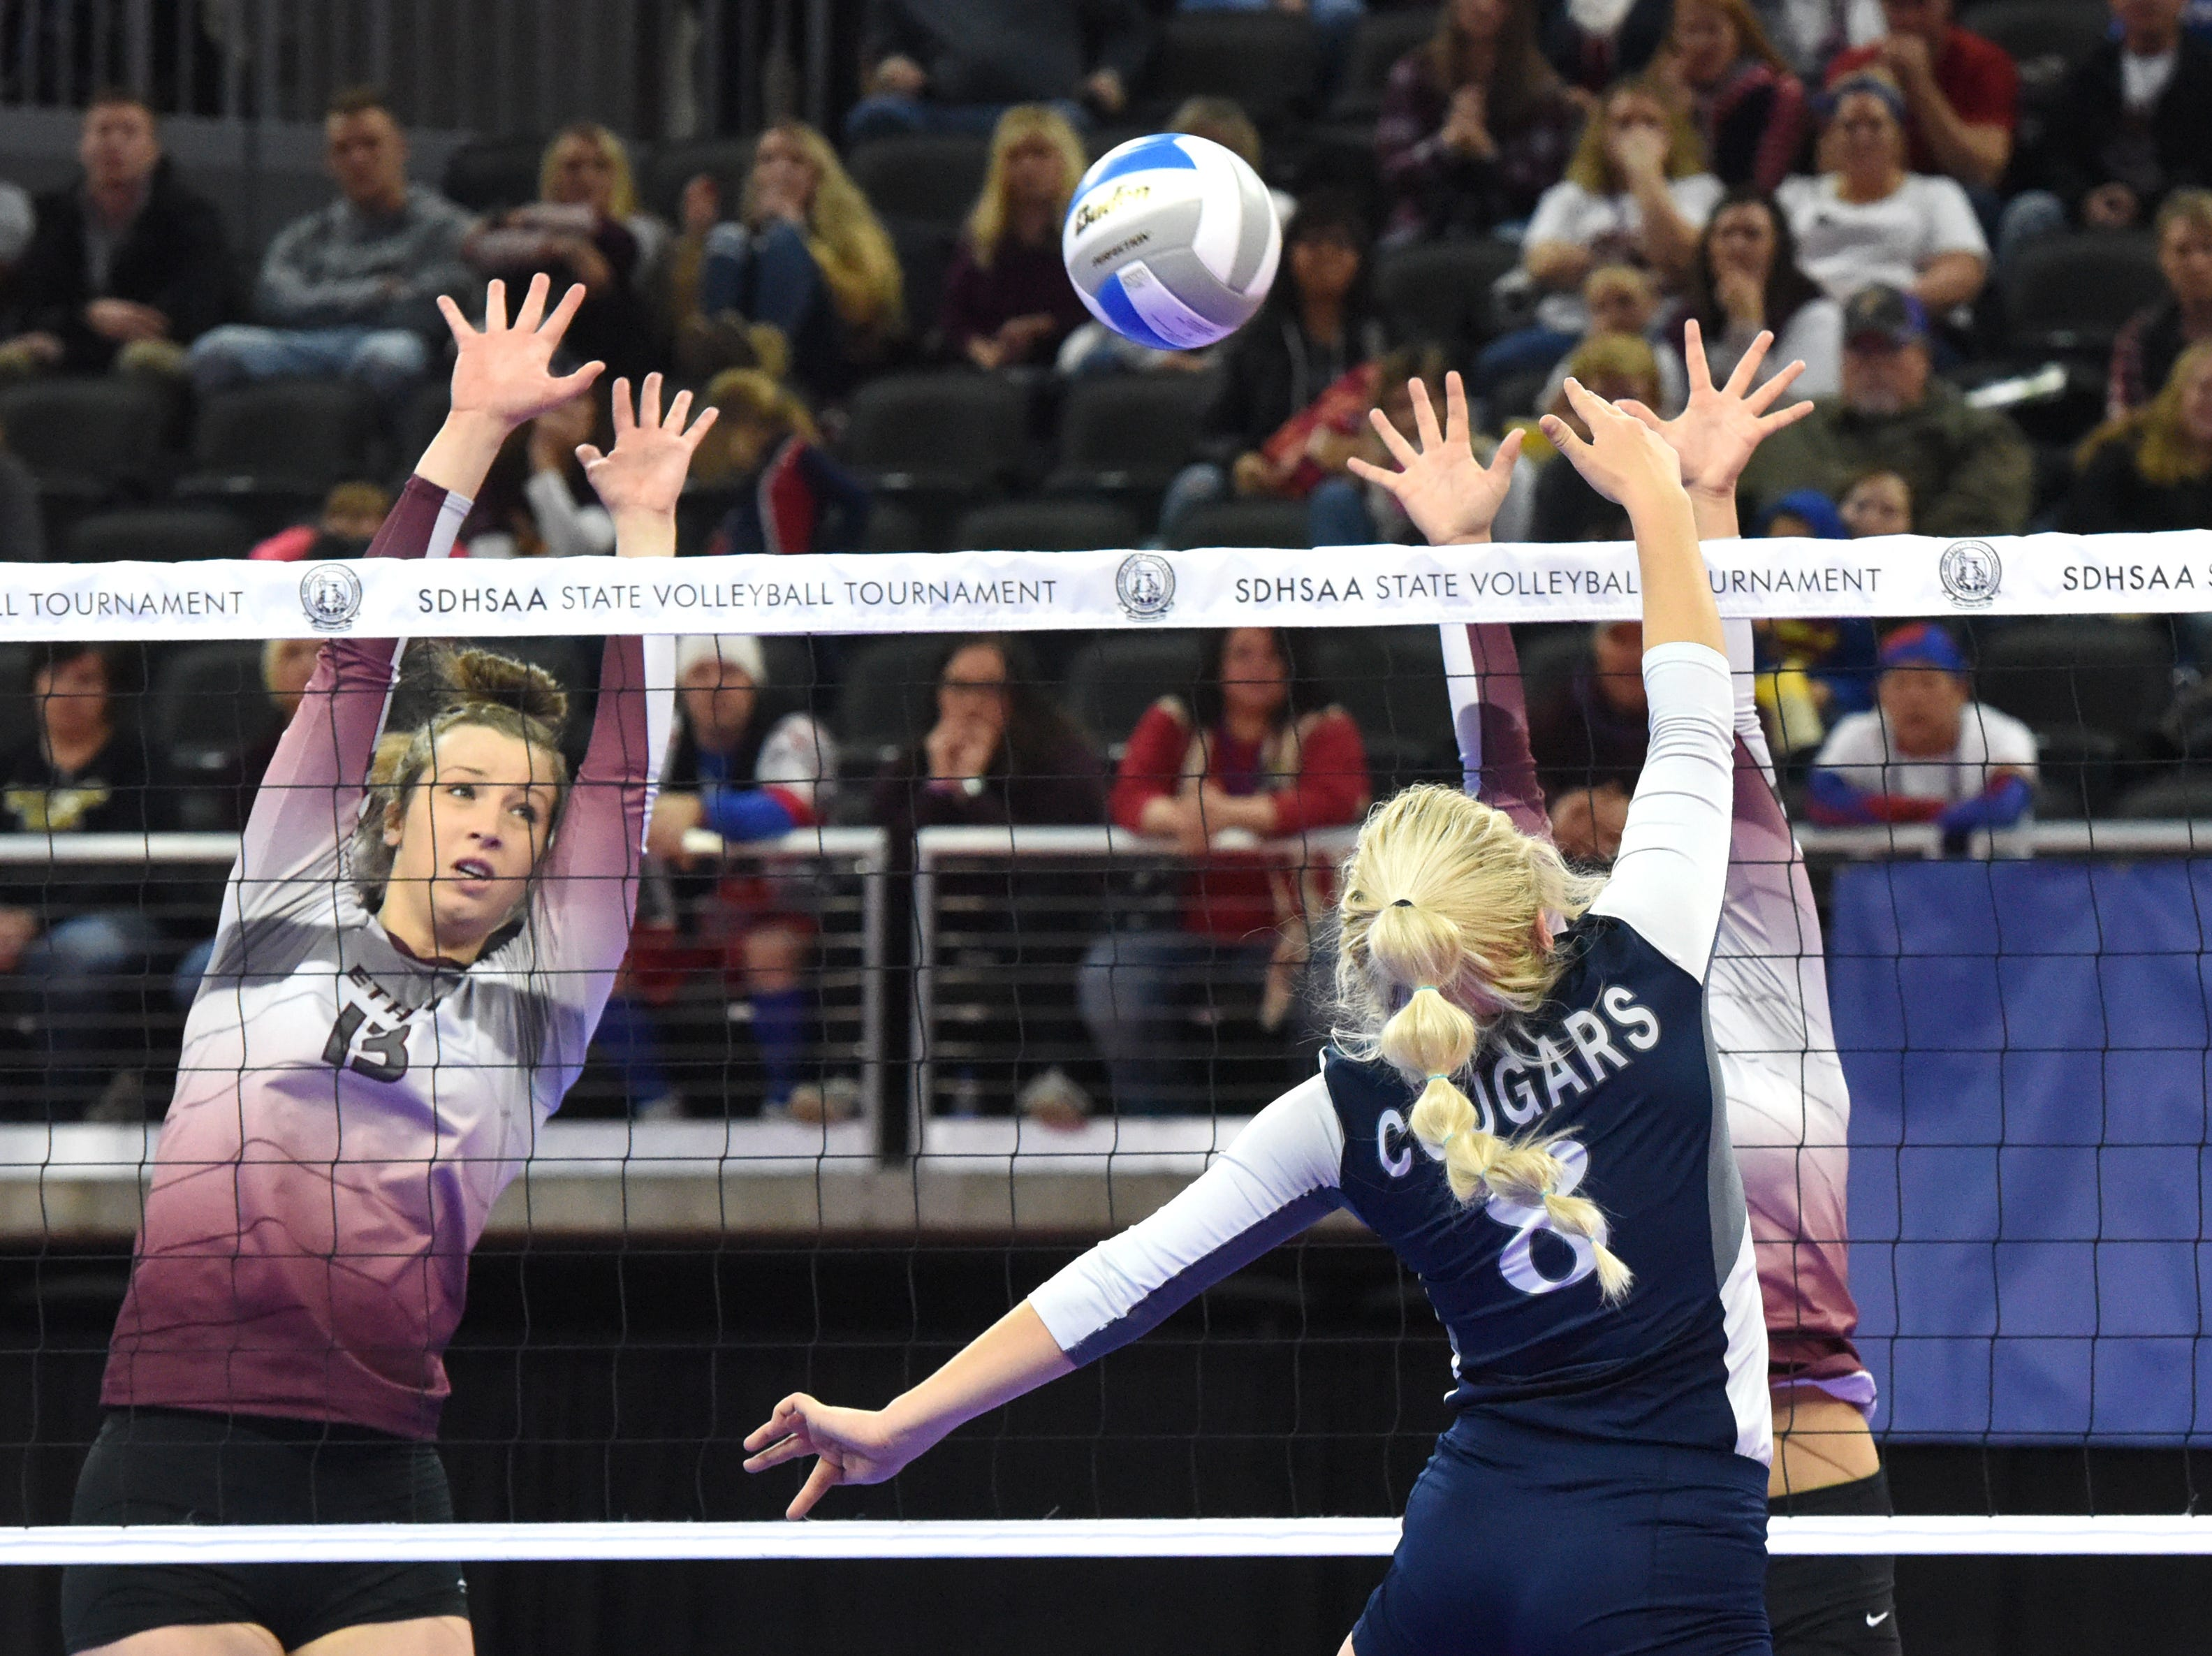 Ethan players try to block the ball during a match against Burke, Friday, Nov. 16, 2018, at the Denny Sanford Premier Center in Sioux Falls, S.D.